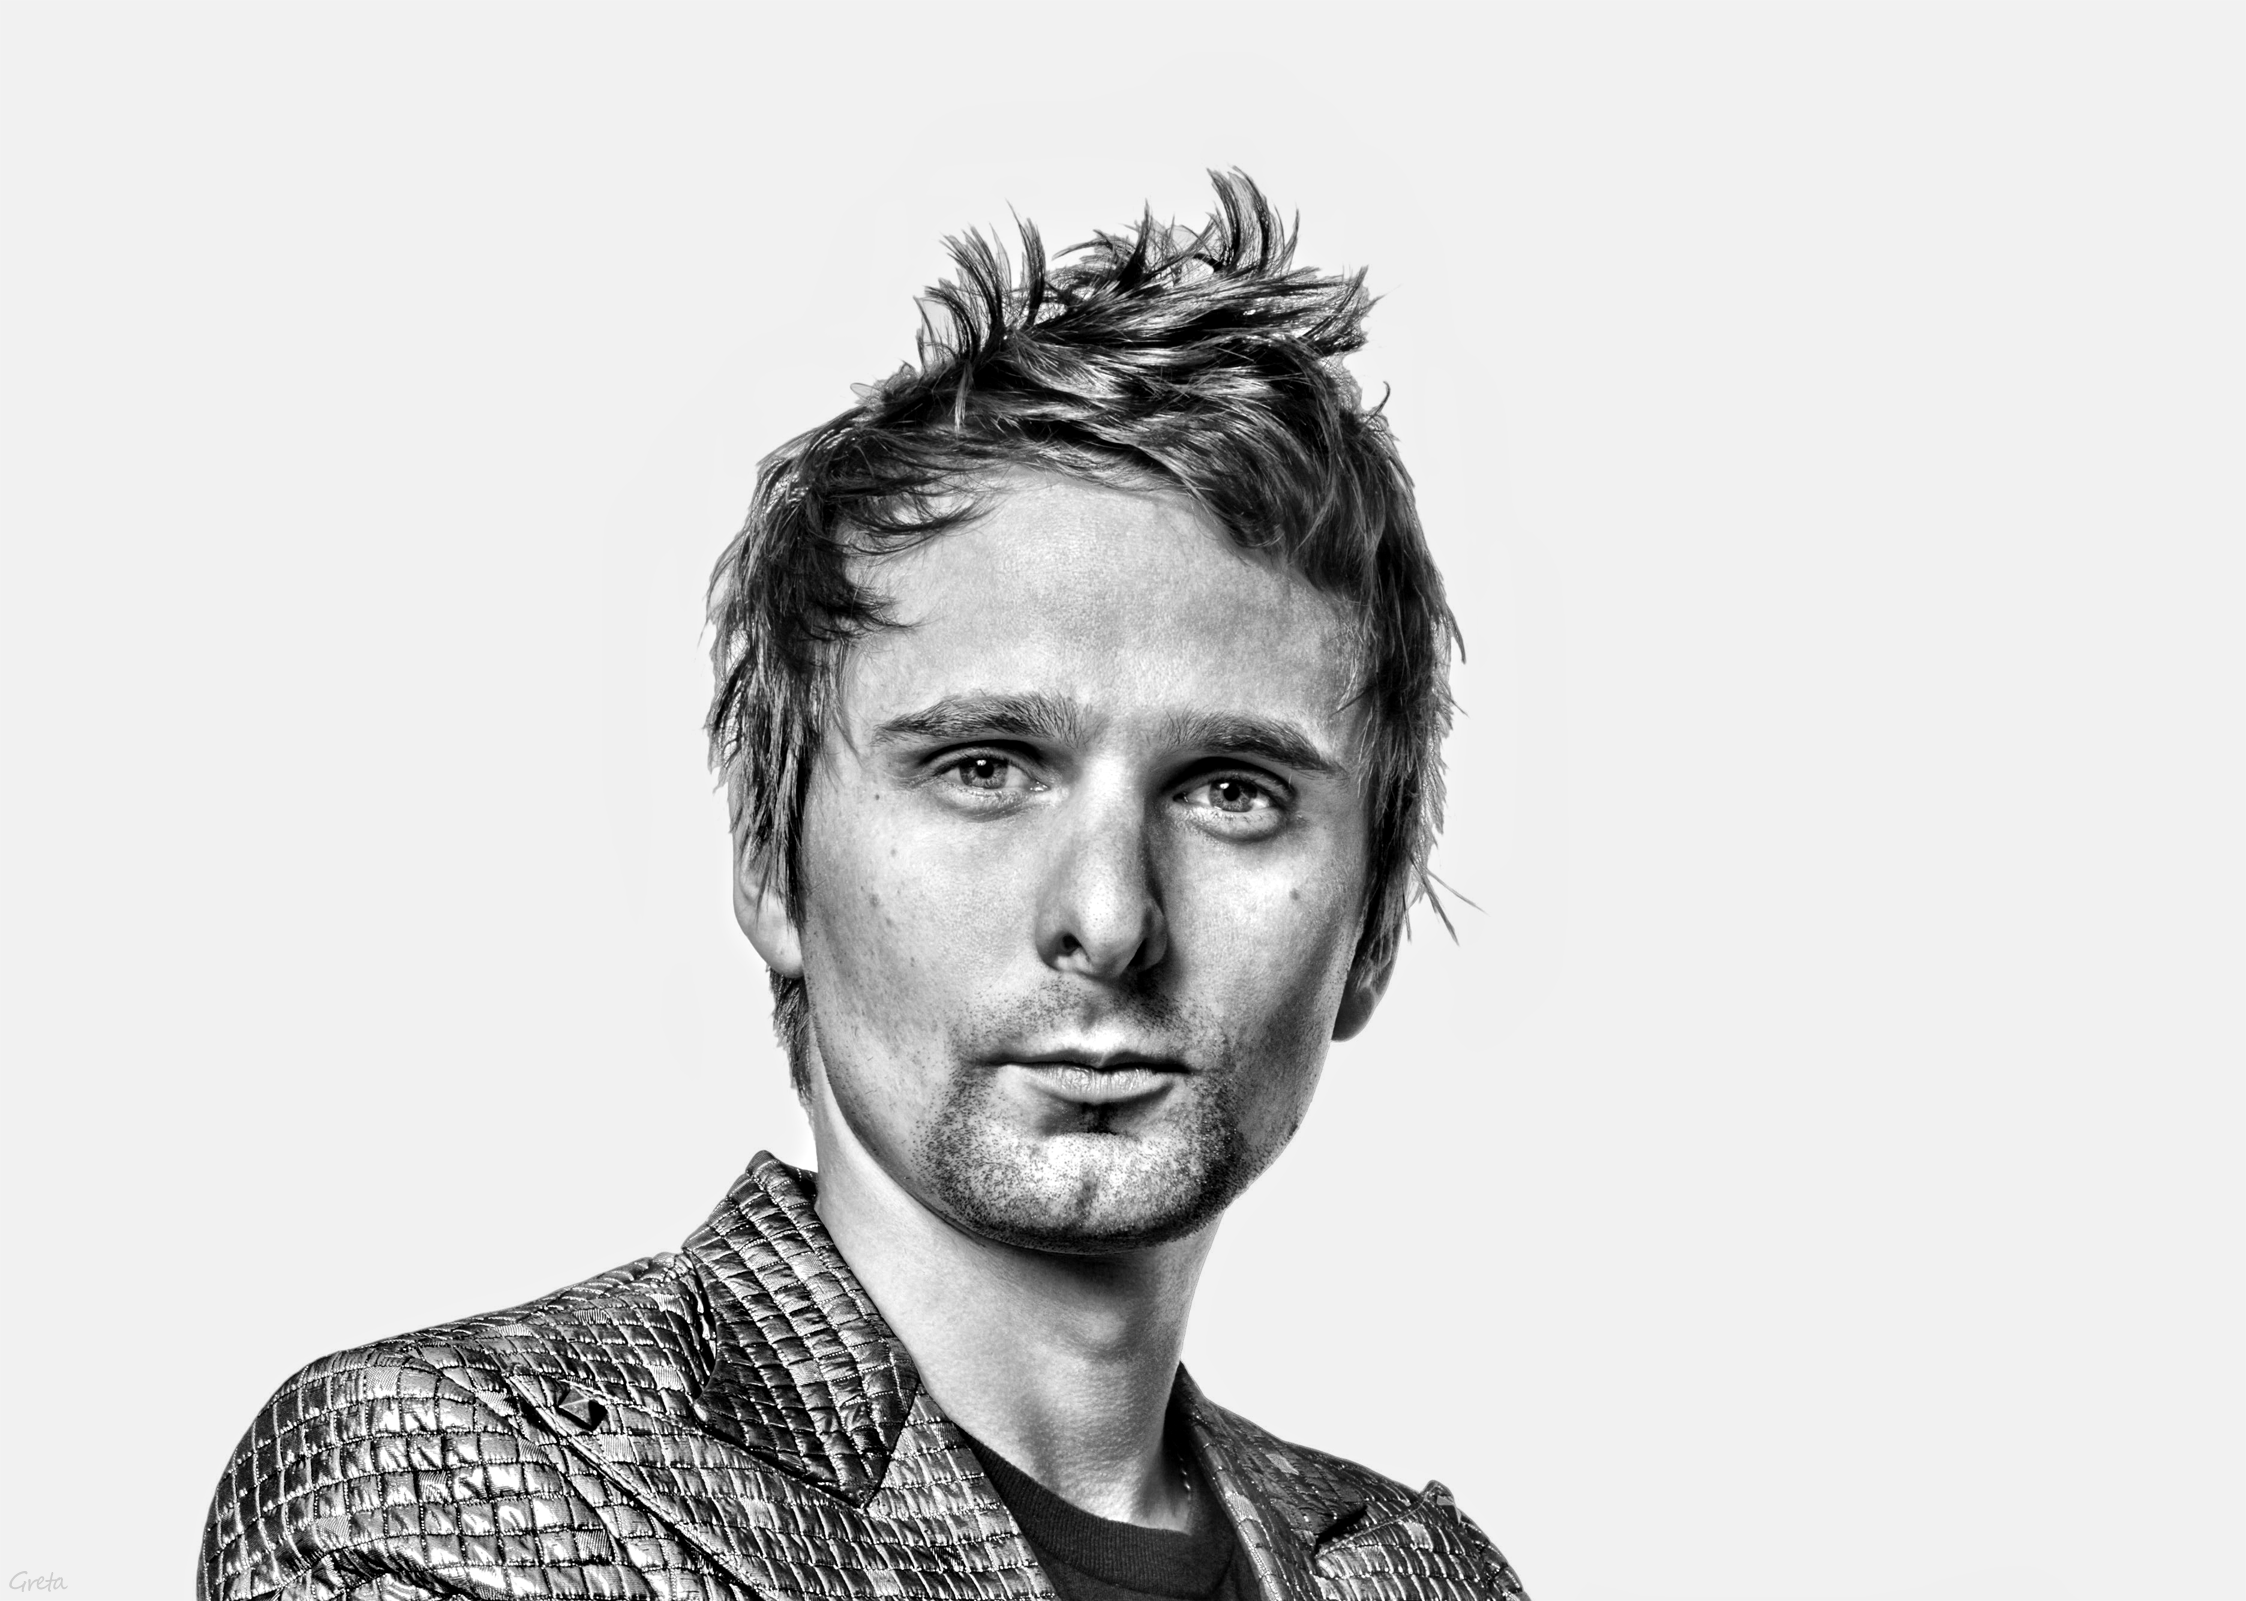 matthew bellamy twitter